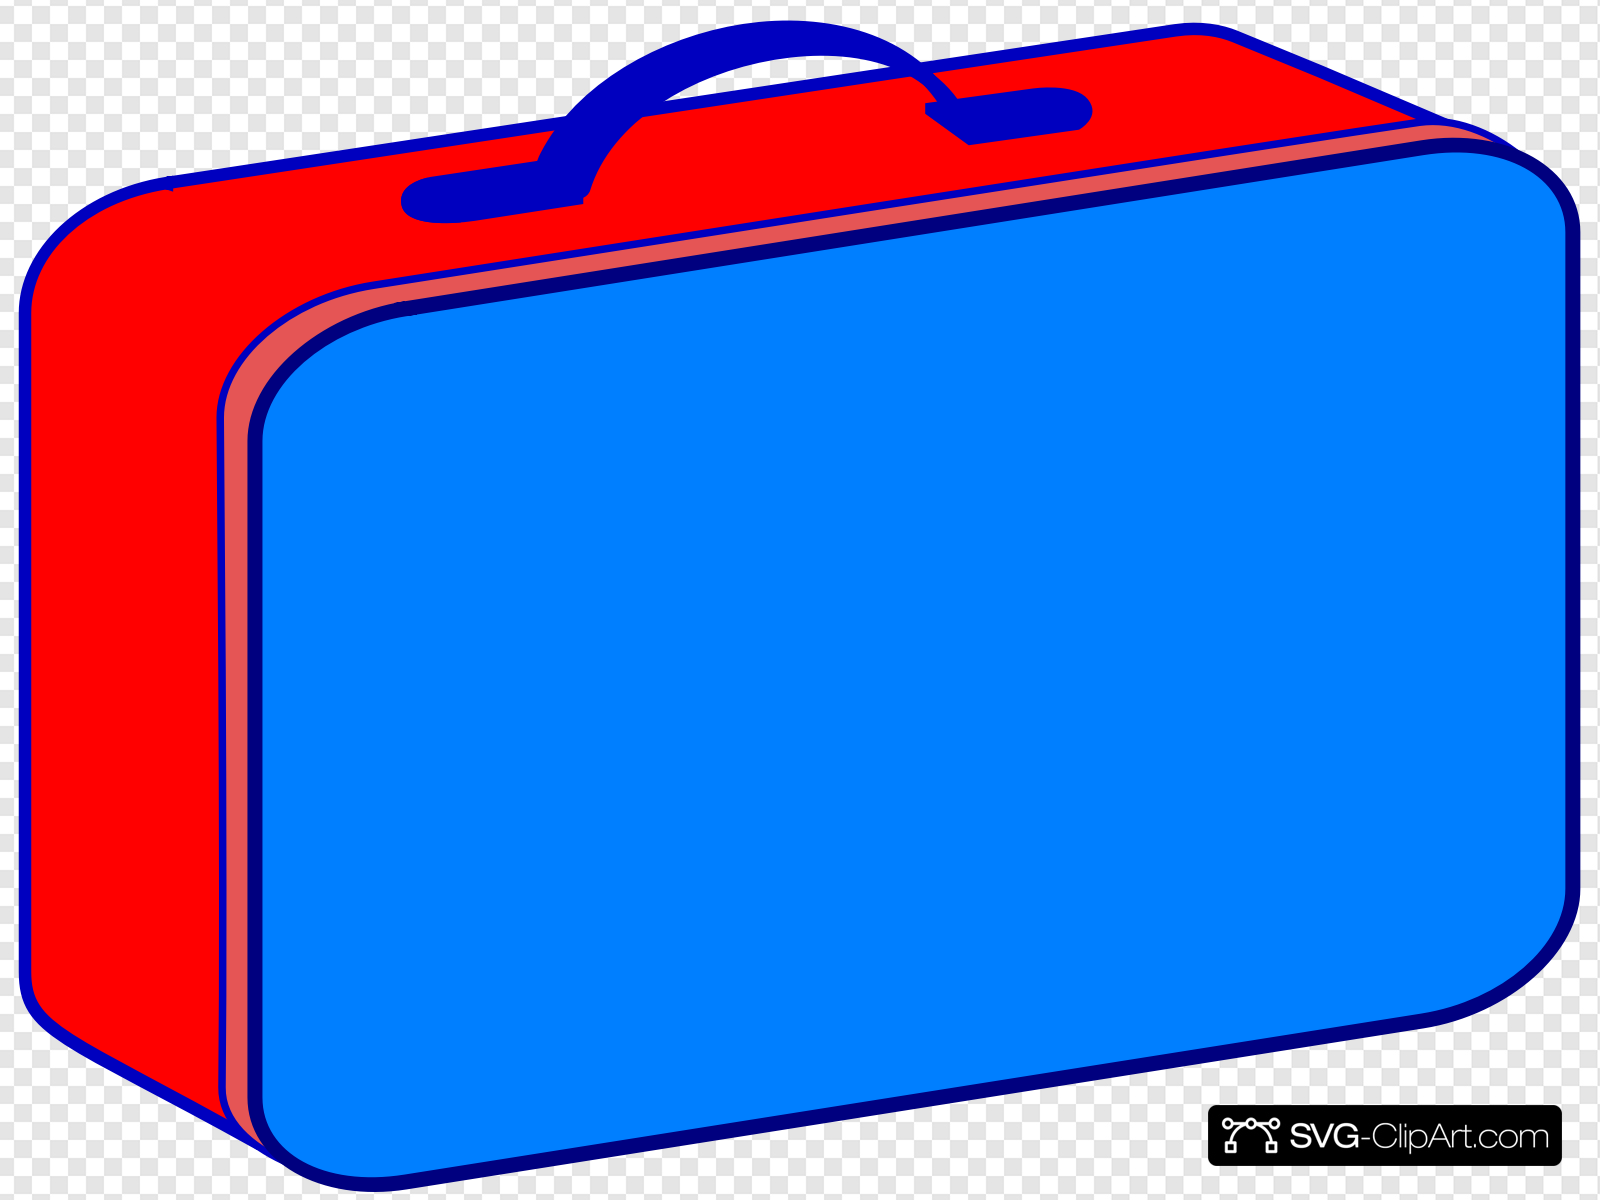 Red and clip art. Lunchbox clipart blue